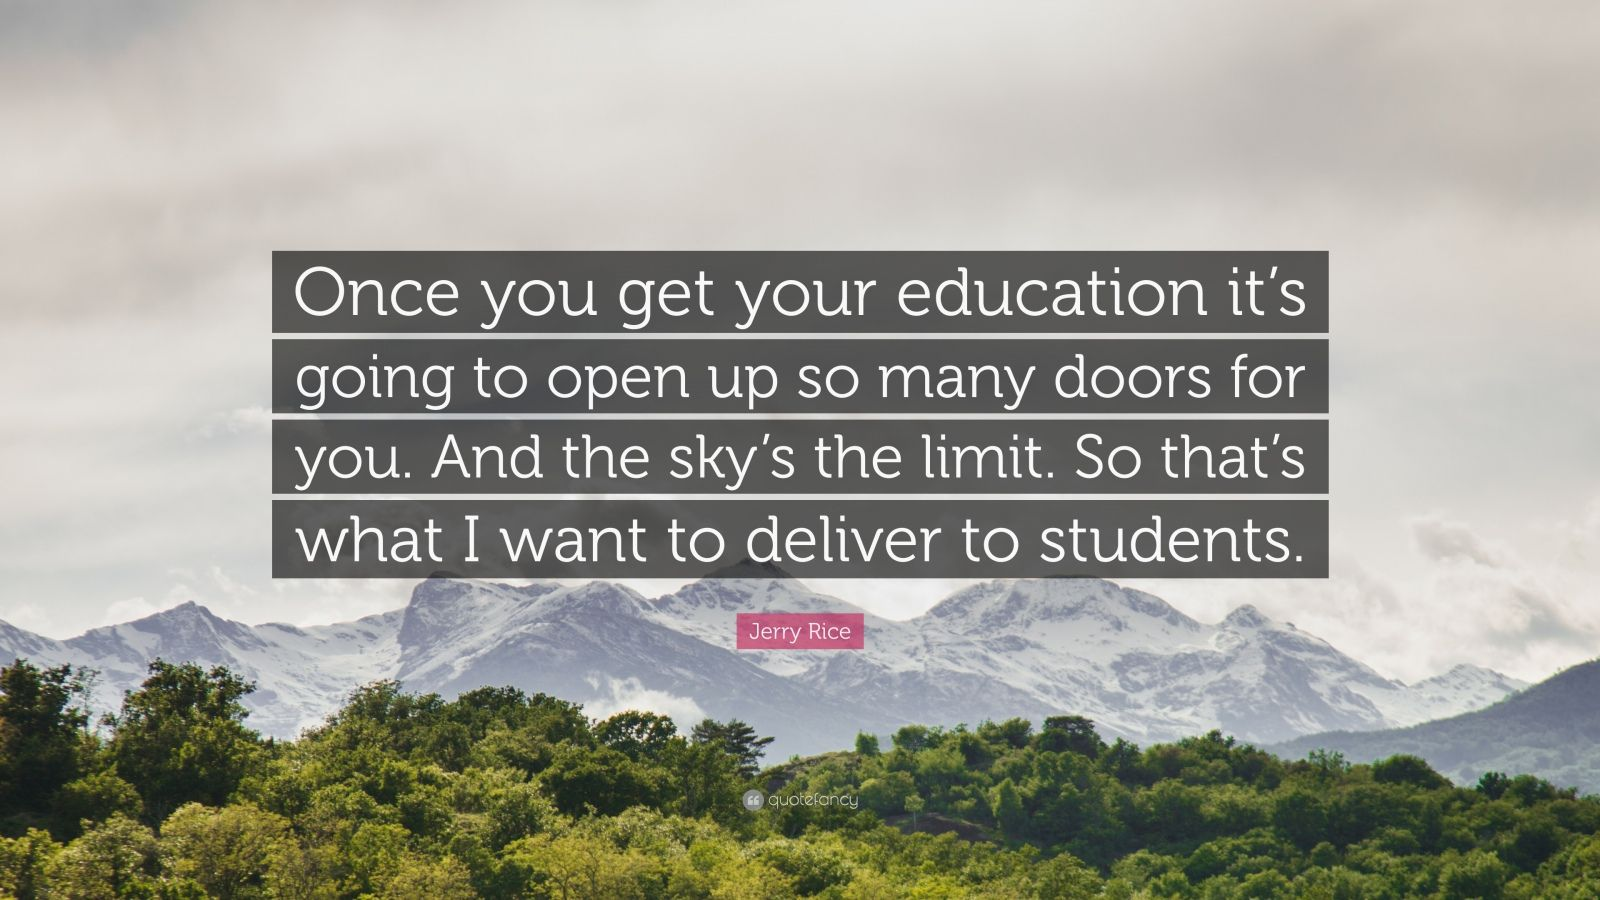 """Jerry Rice Quote: """"Once you get your education it's going to open up so many doors for you. And the sky's the limit. So that's what I want to deliver to students."""""""